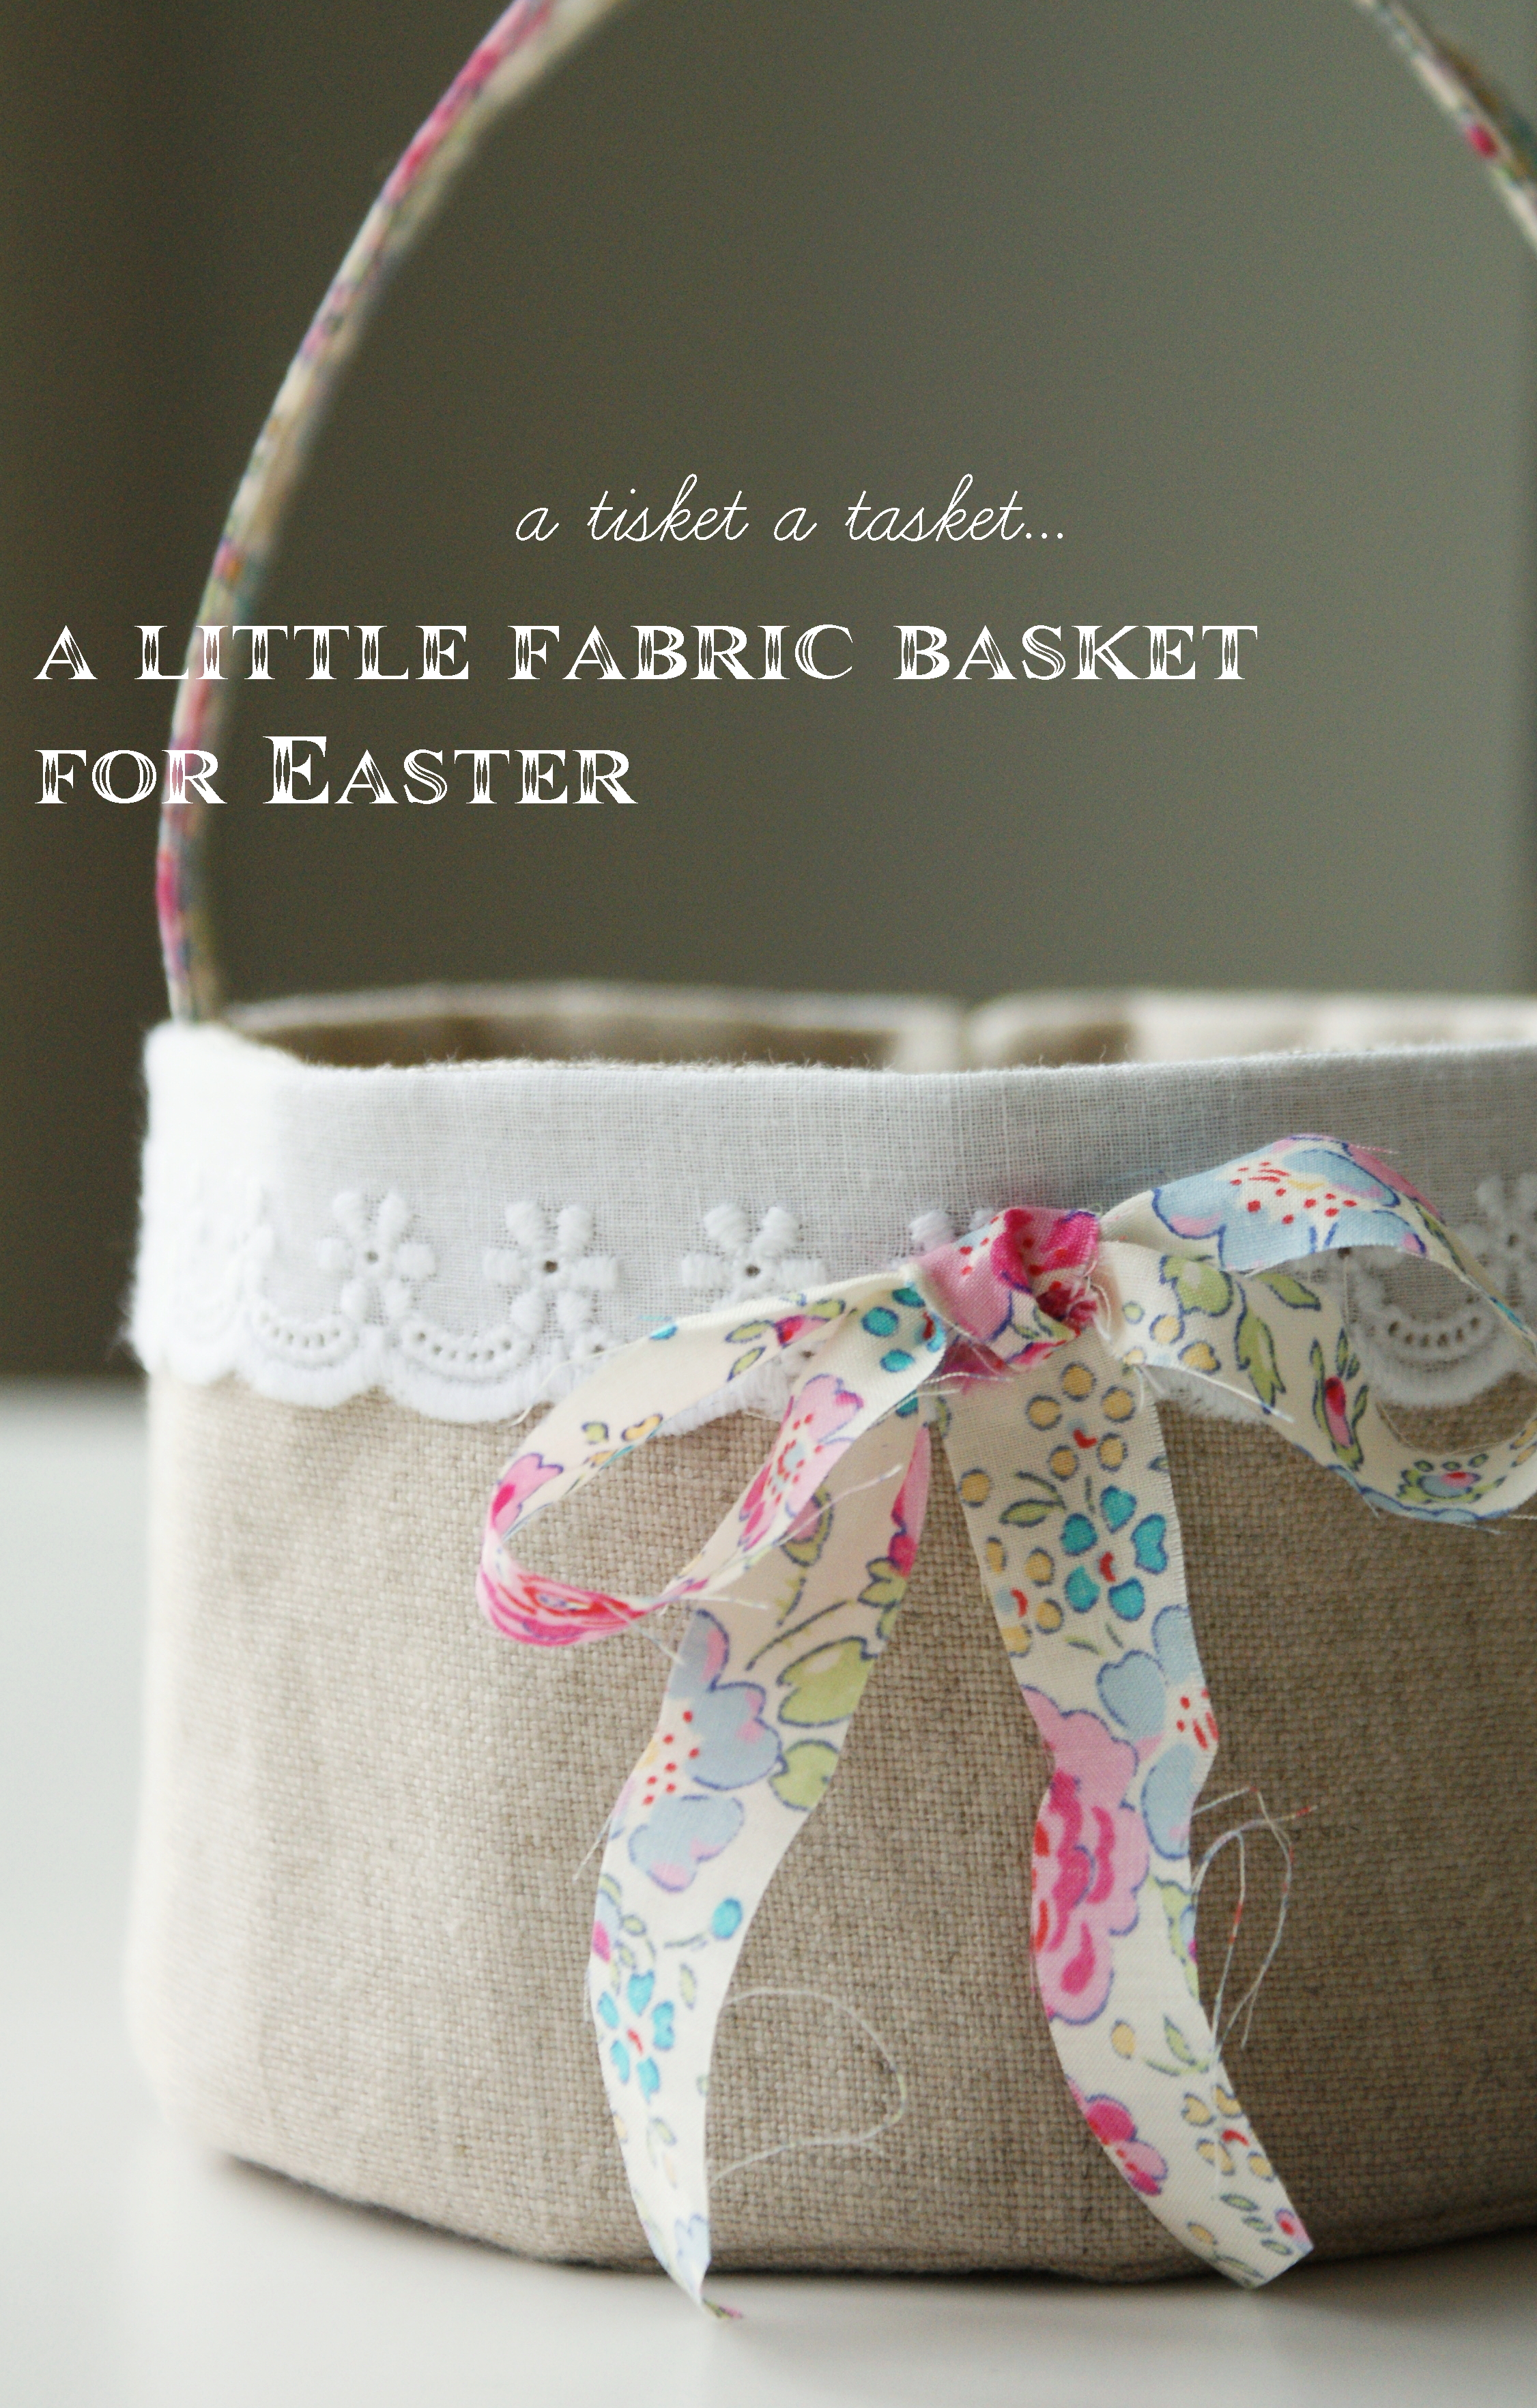 20 cute homemade easter basket ideas easter gifts for kids and 20 cute homemade easter basket ideas easter gifts for kids and adults negle Gallery